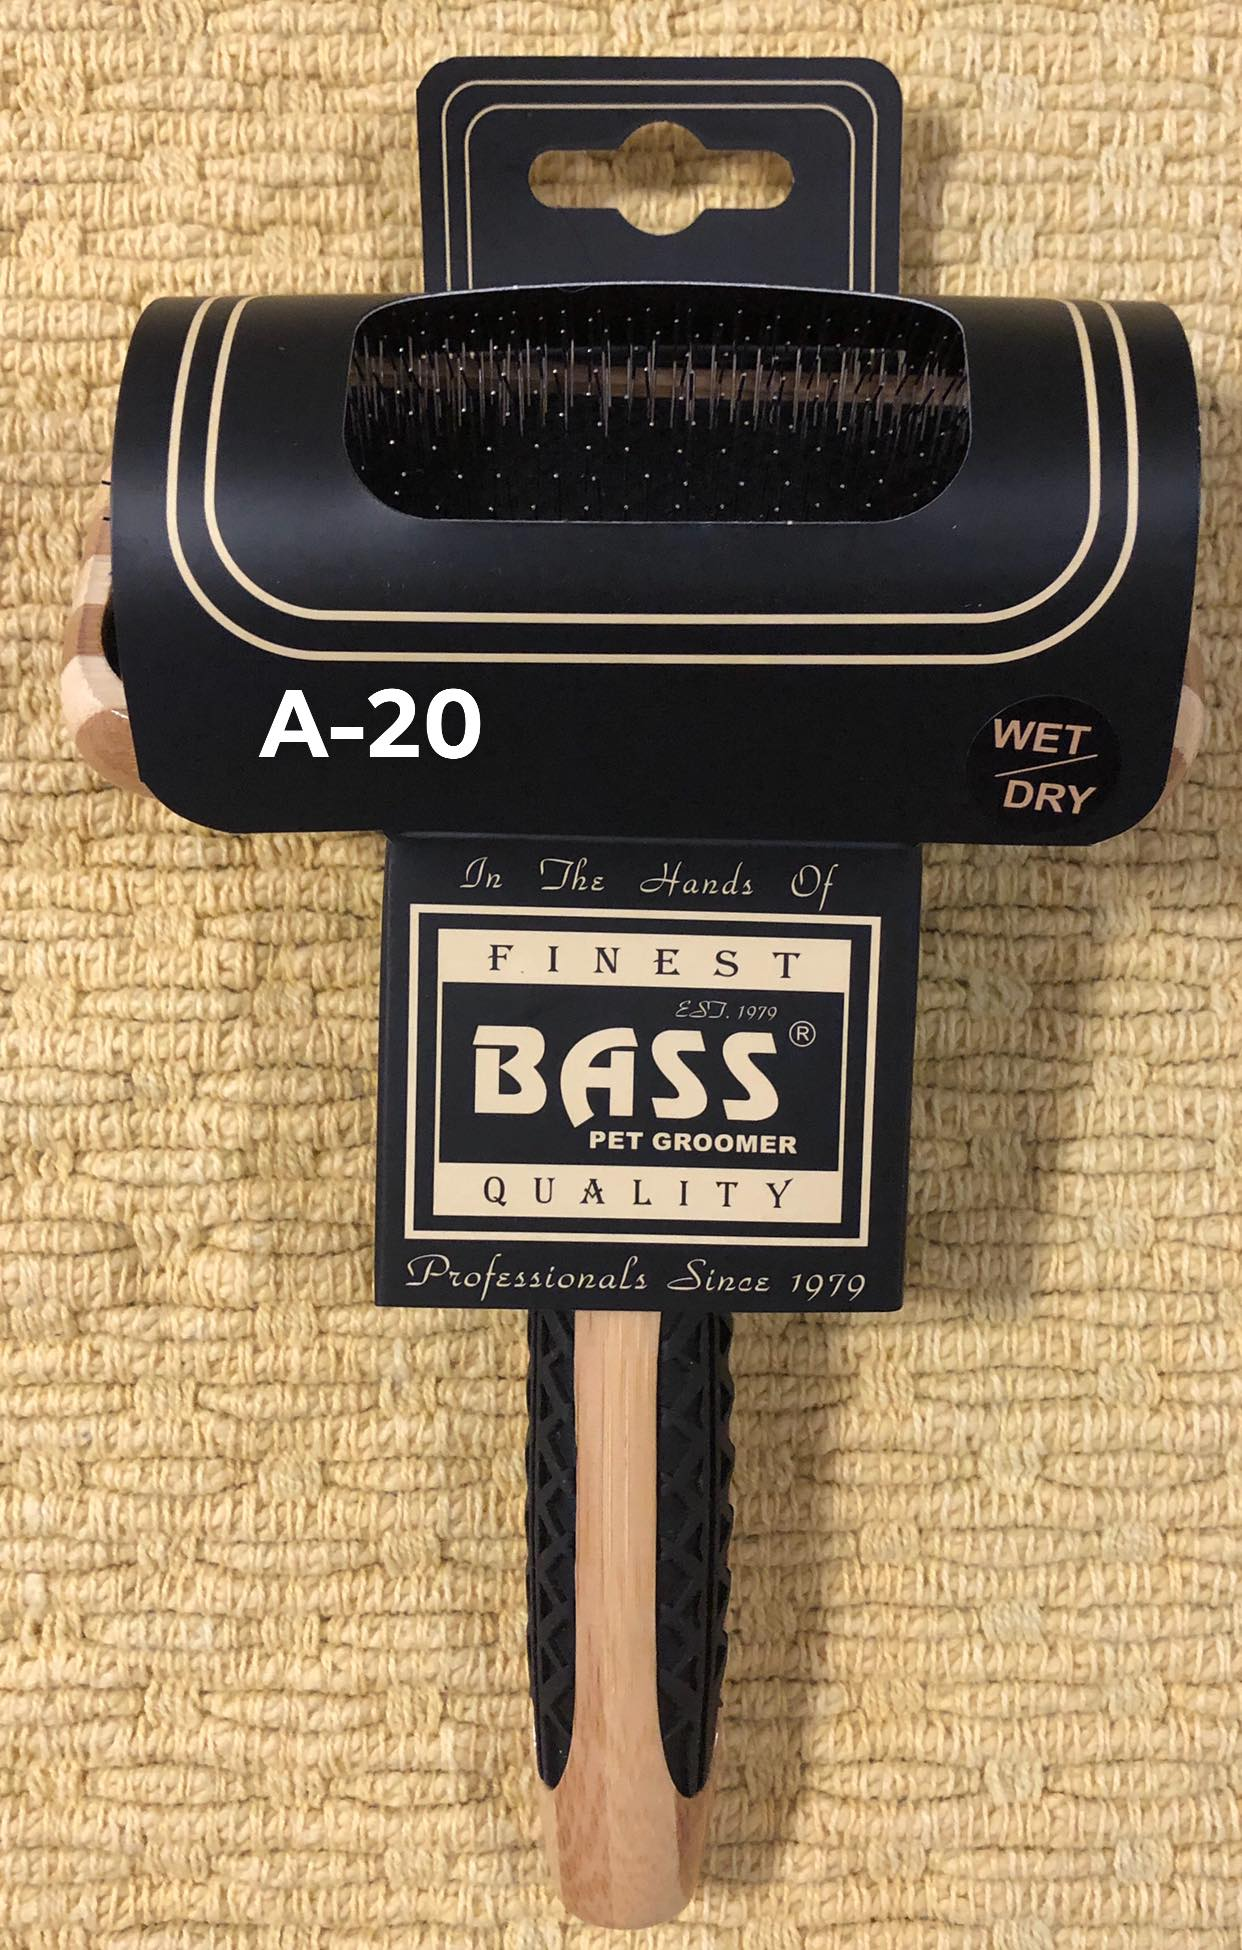 Bass Brush A-20 wet/dry regular